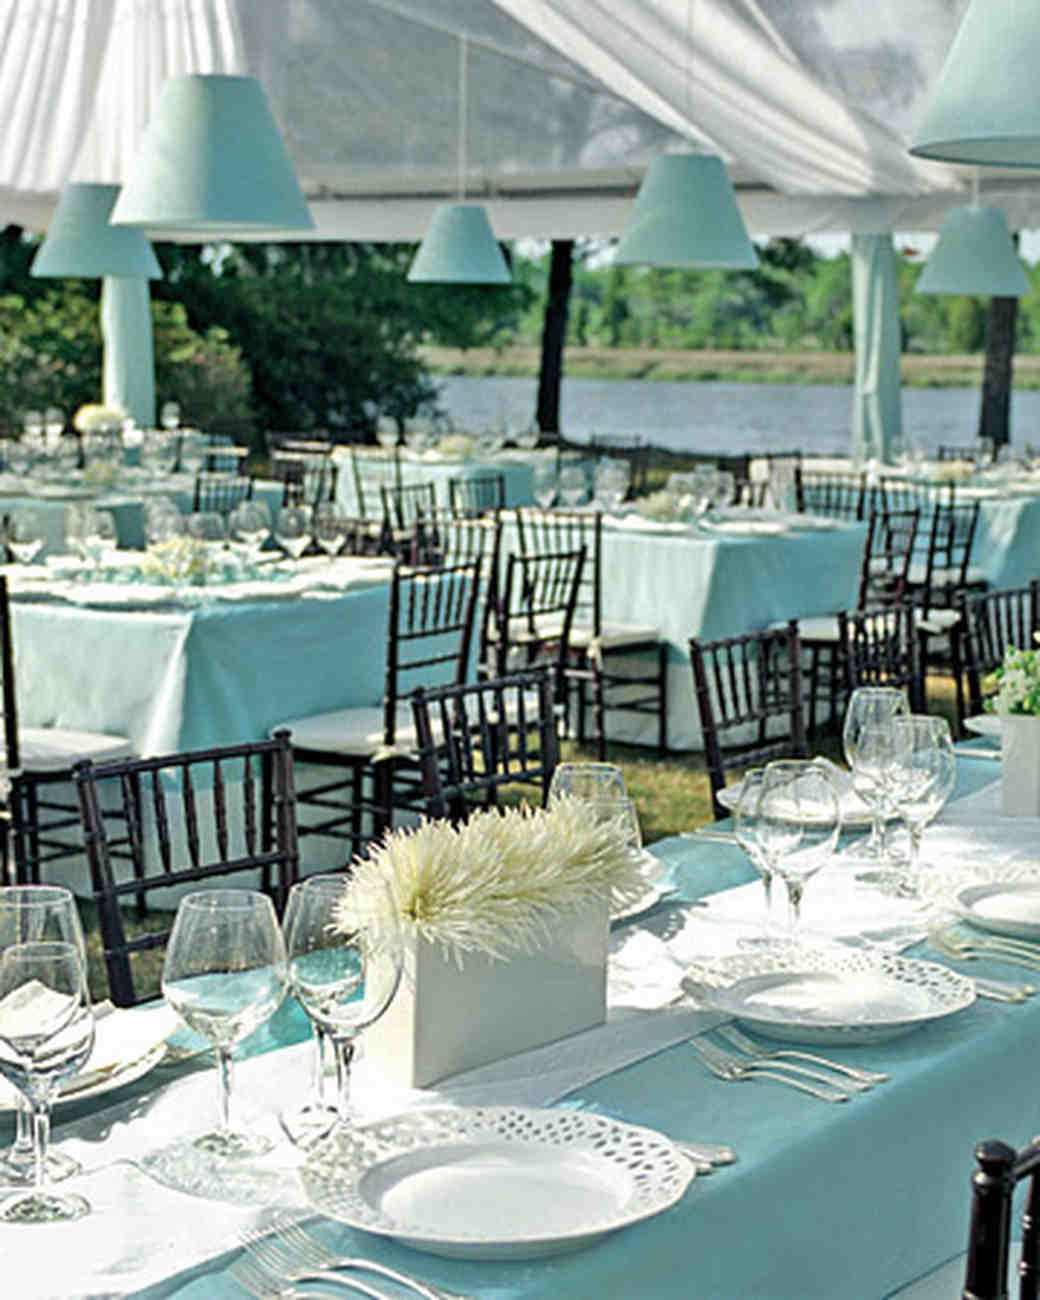 Tiffany Blue Wedding Decoration Ideas: A Formal Tiffany-Blue-and-White Wedding At A Plantation In